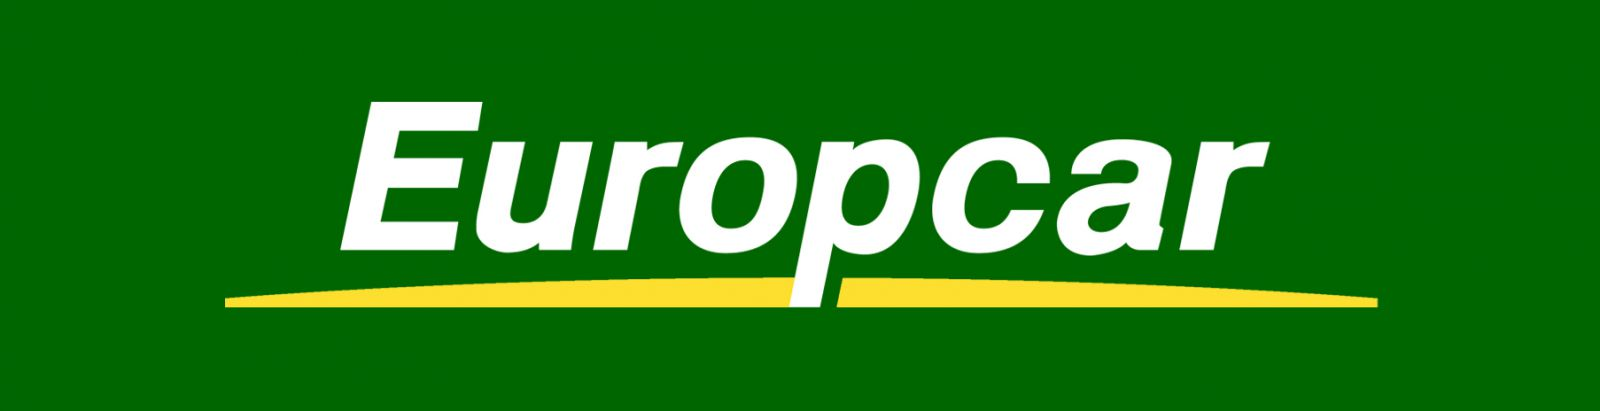 Europcar coupon code